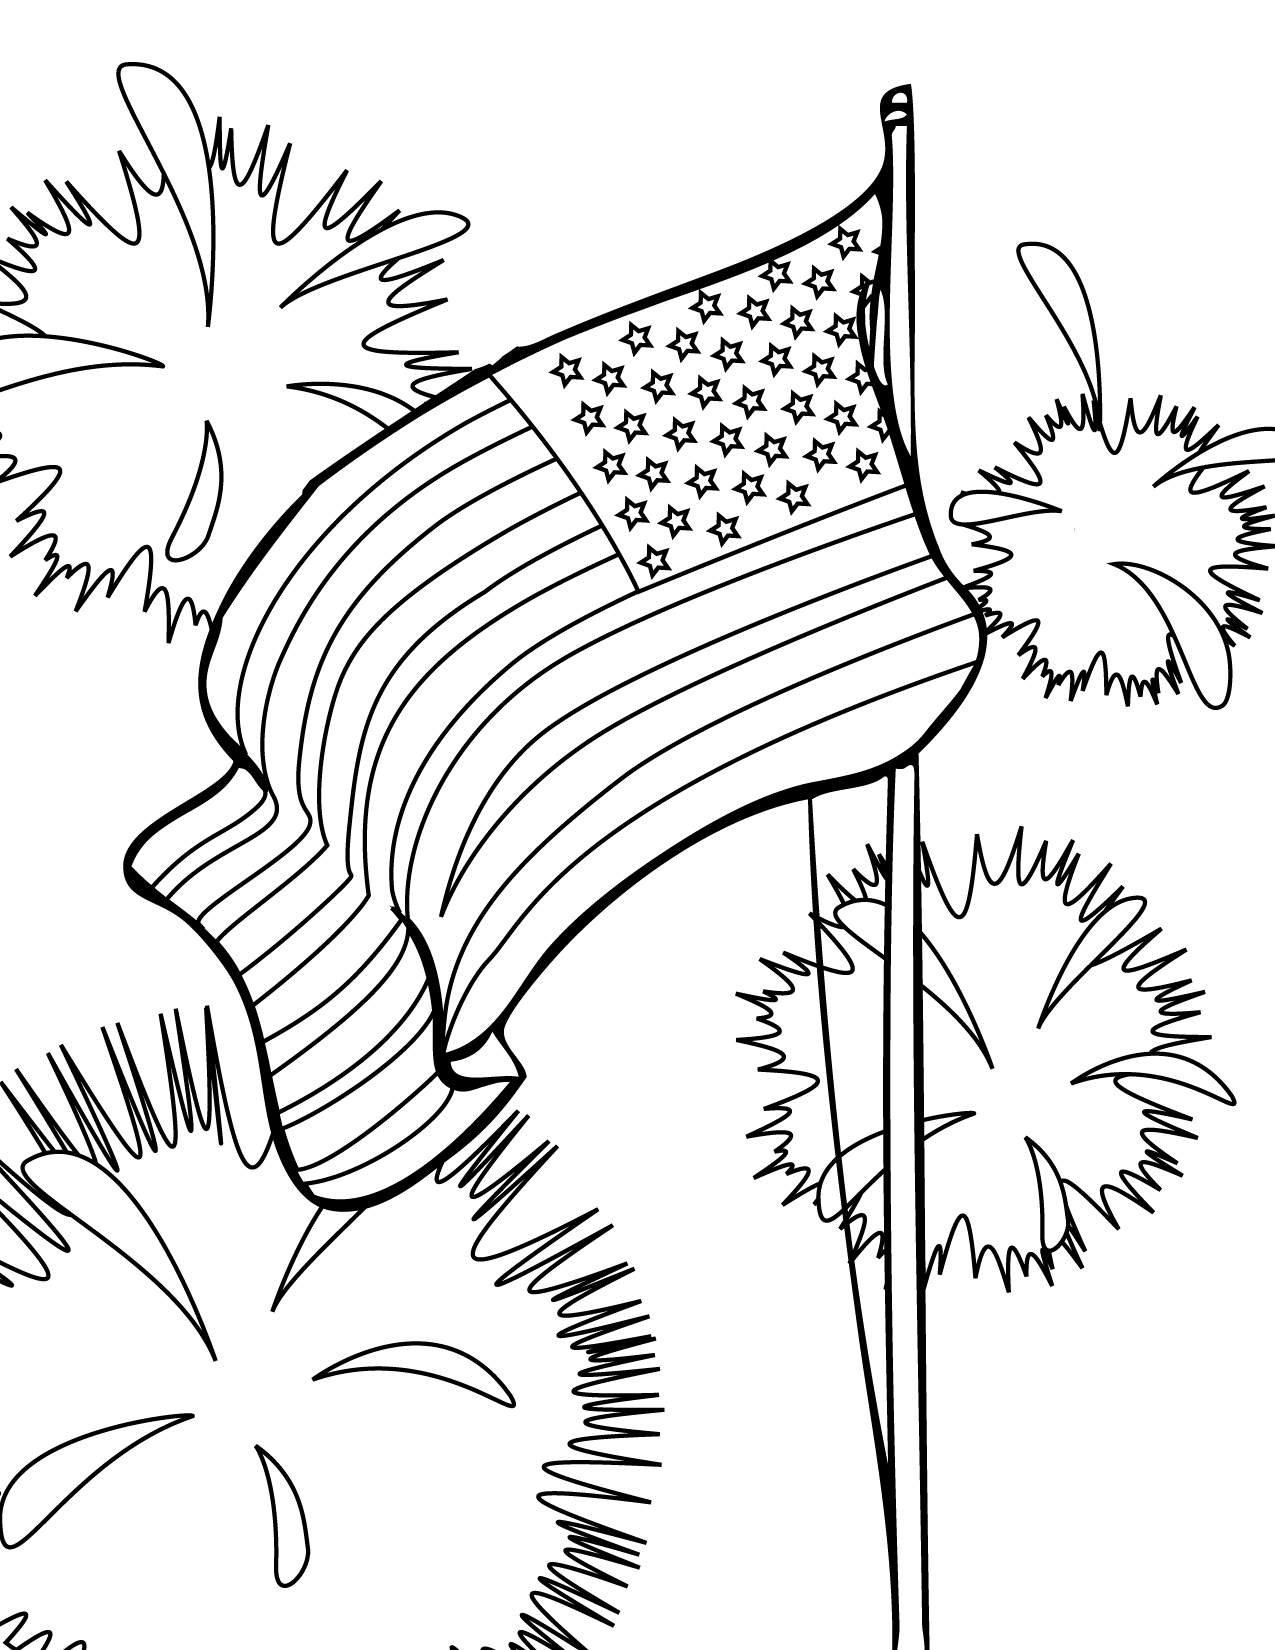 Fourth of July Coloring Pages part III